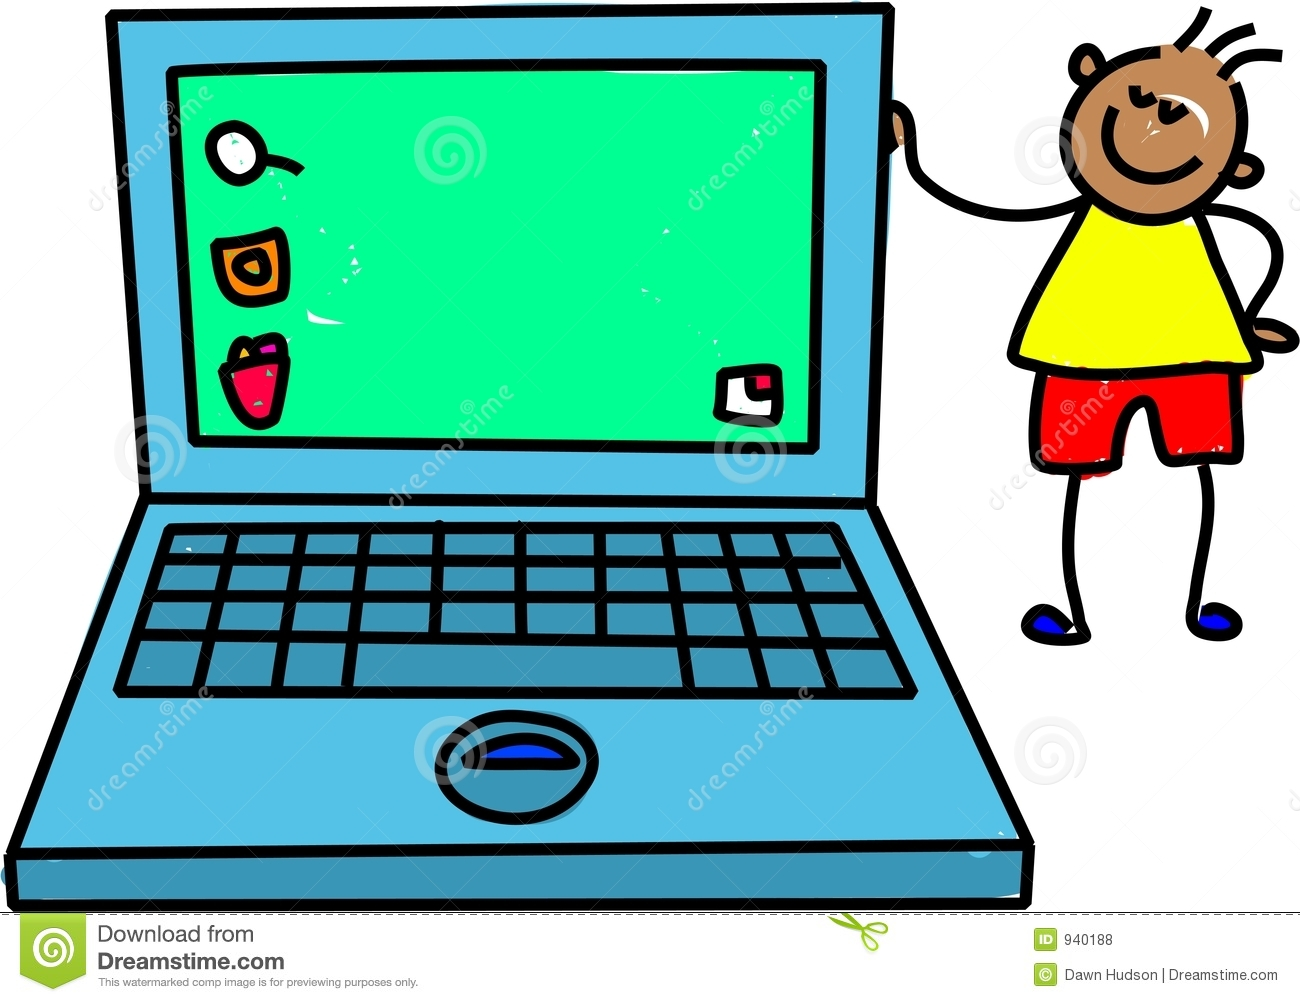 Computer vs laptop clipart graphic free stock Computer laptop clipart - ClipartFest graphic free stock